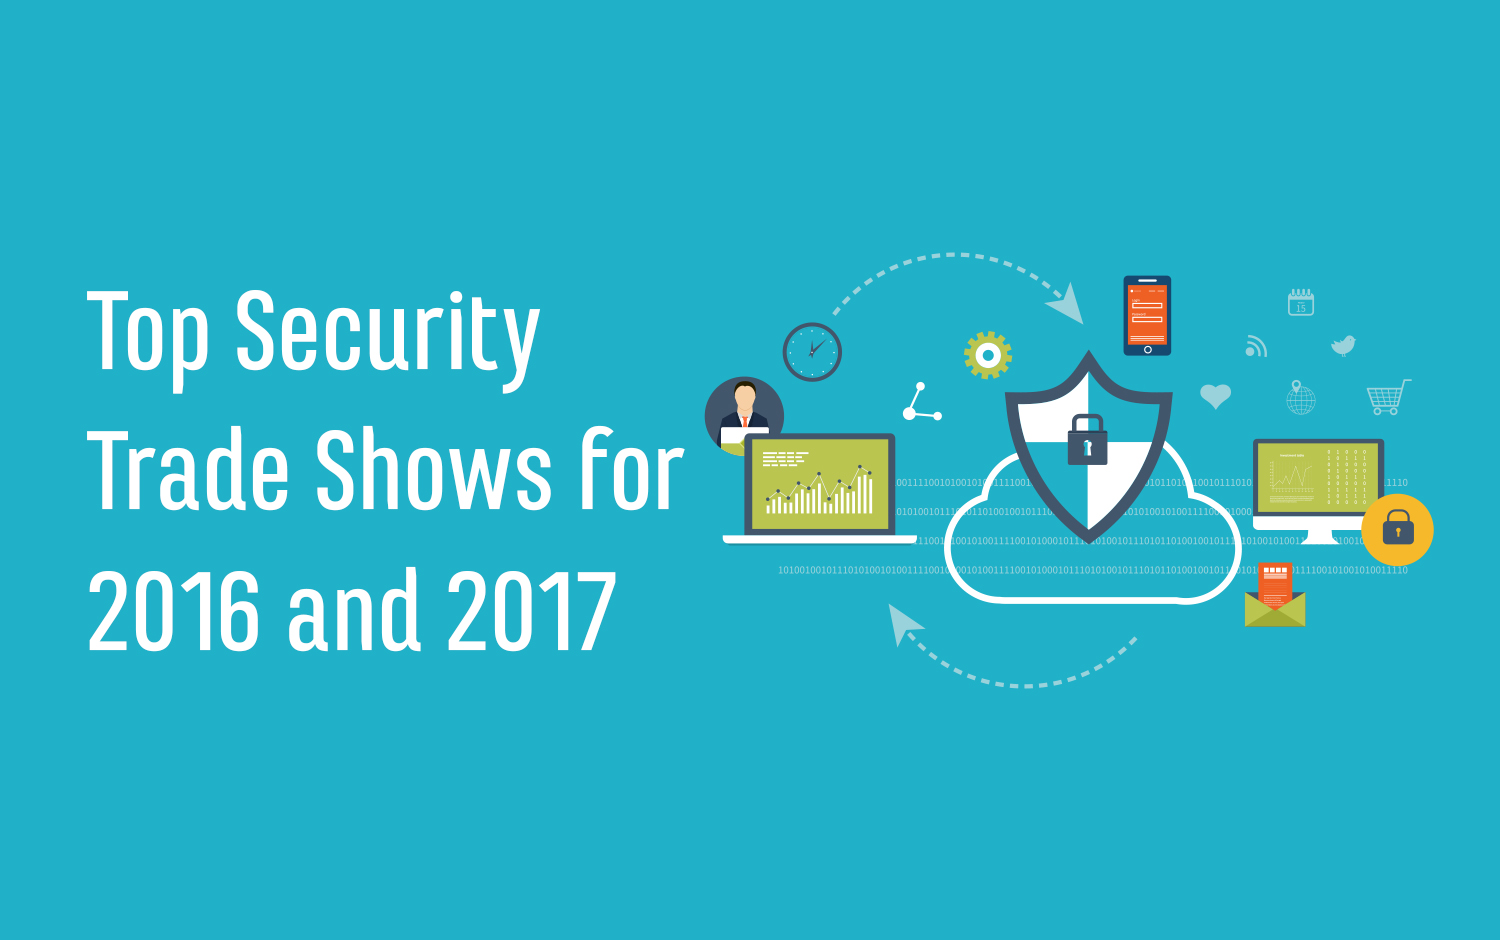 Top Security Trade Shows 2016 and 2017 | ExpoMarketing